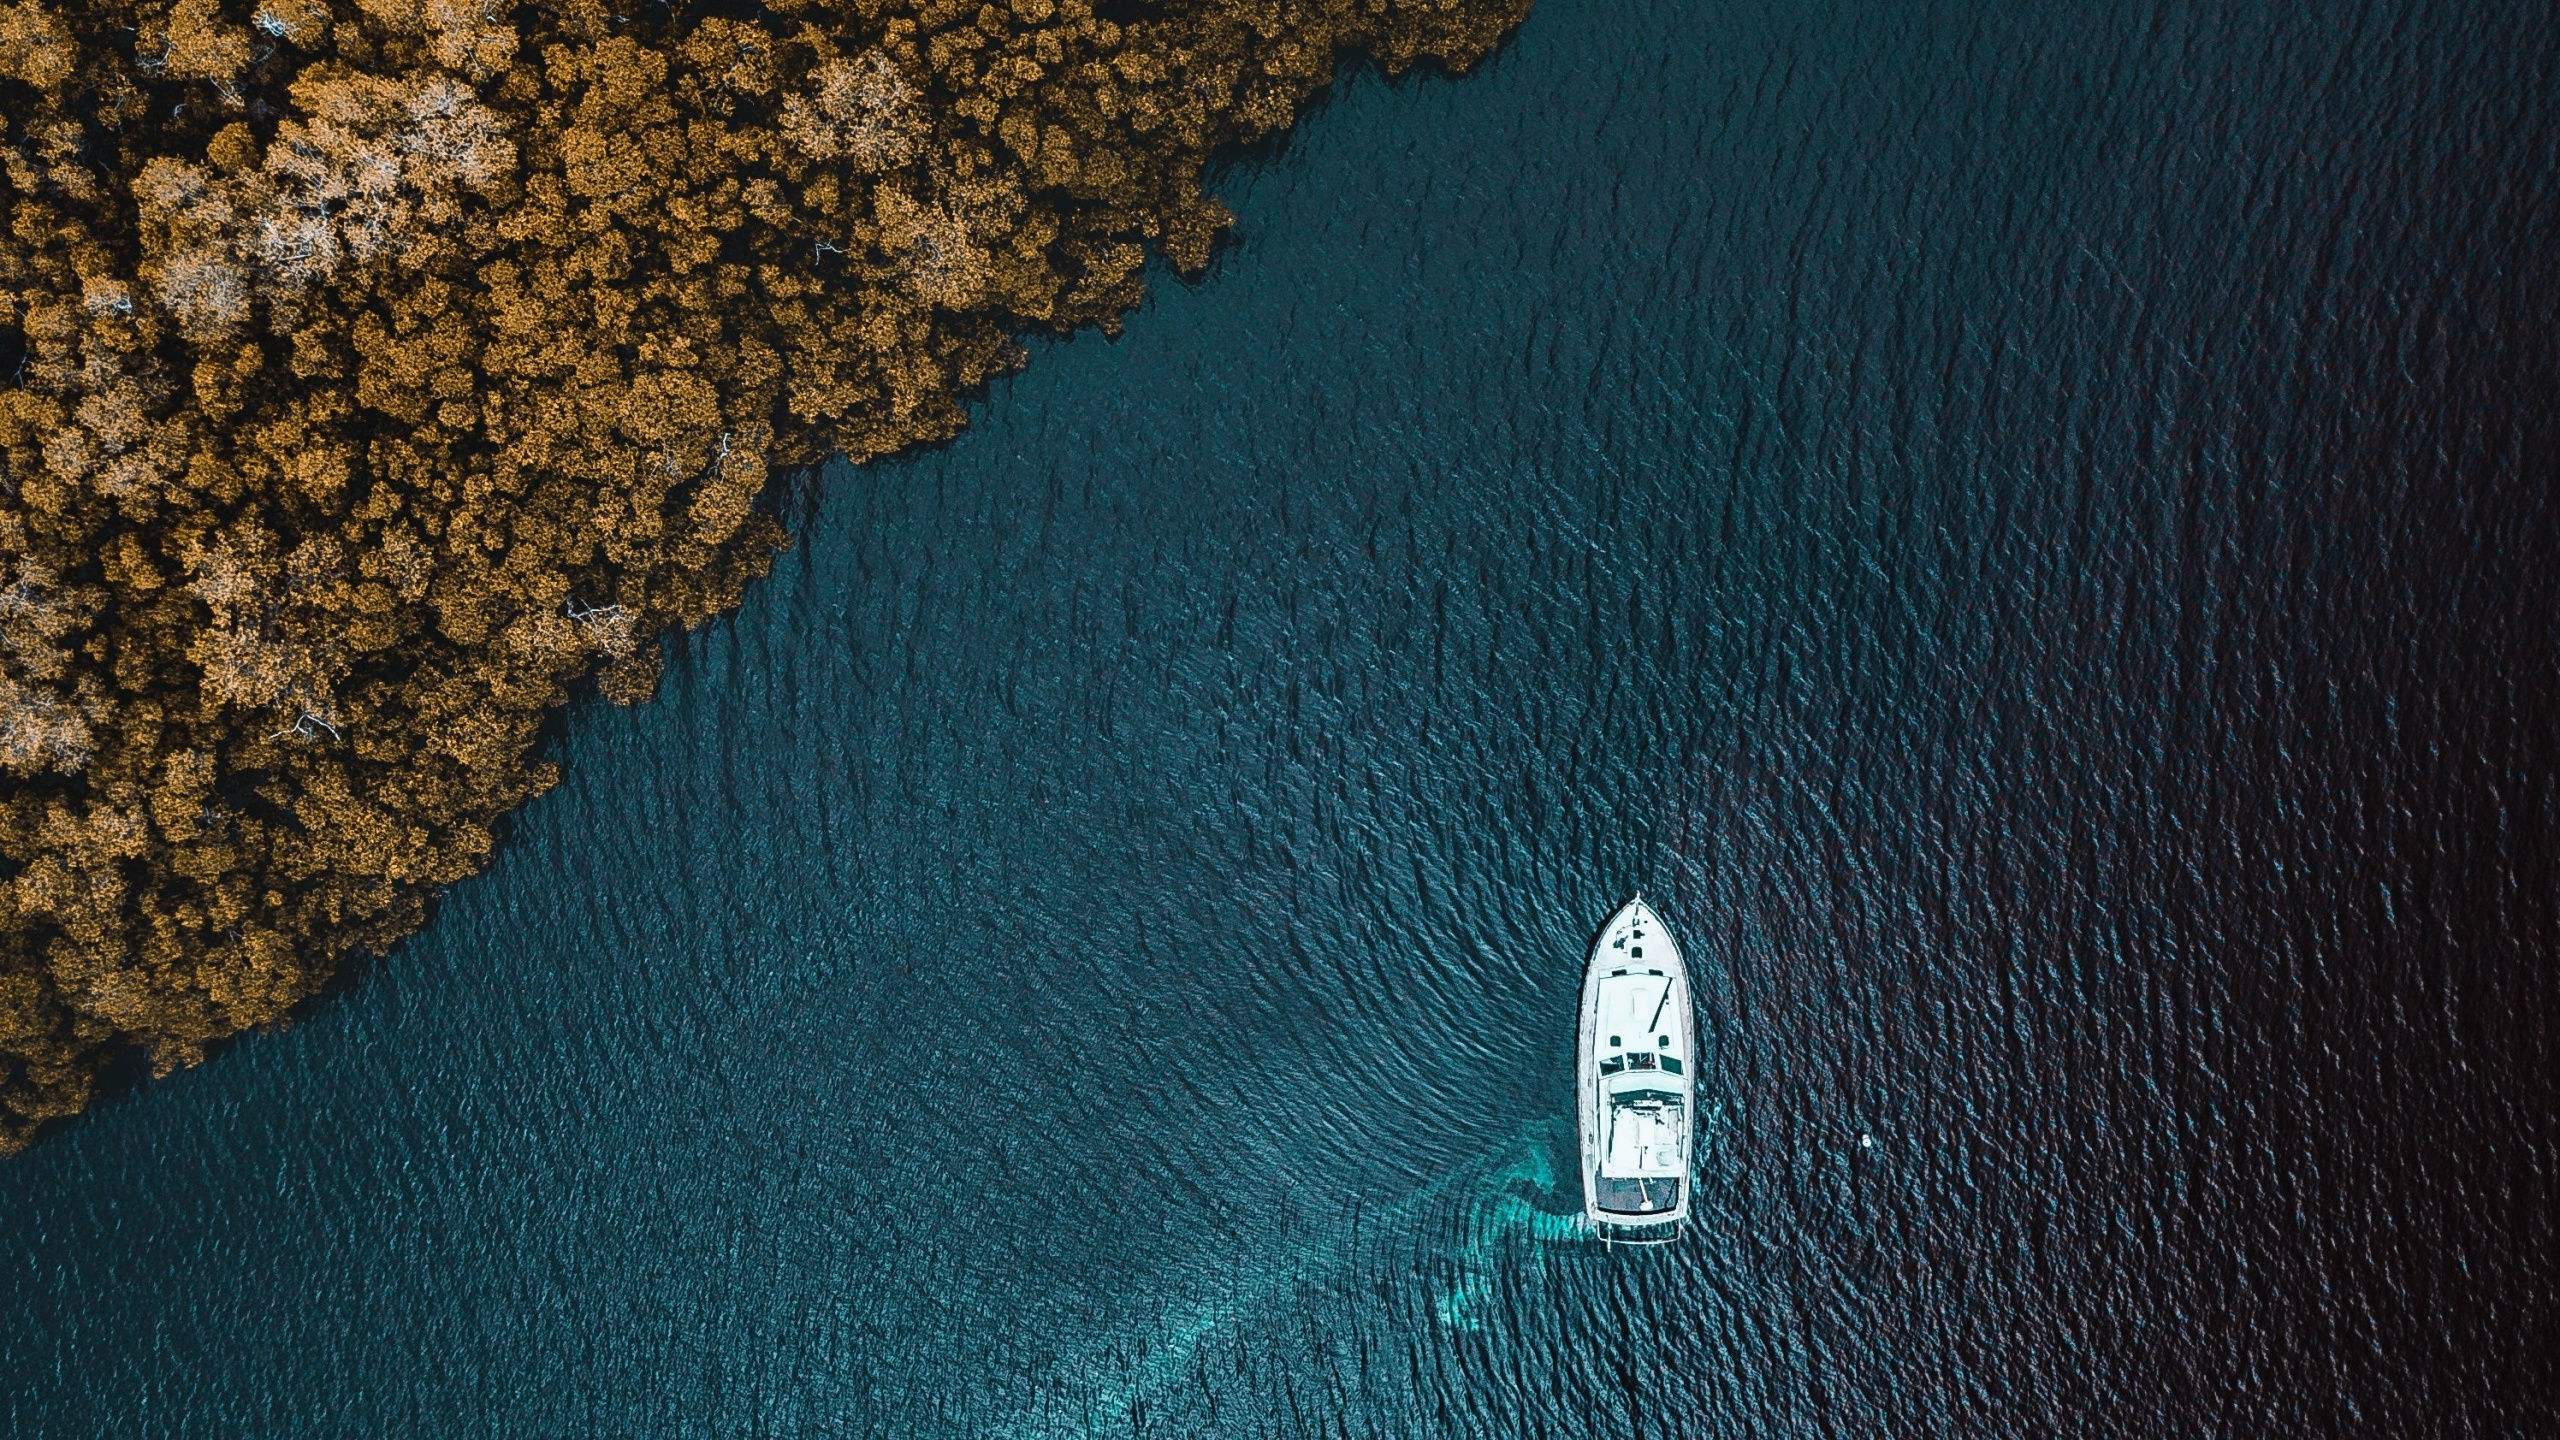 General 2560x1440 aerial sea boat vehicle water trees drone photo top view aerial view forest bird's eye view solice